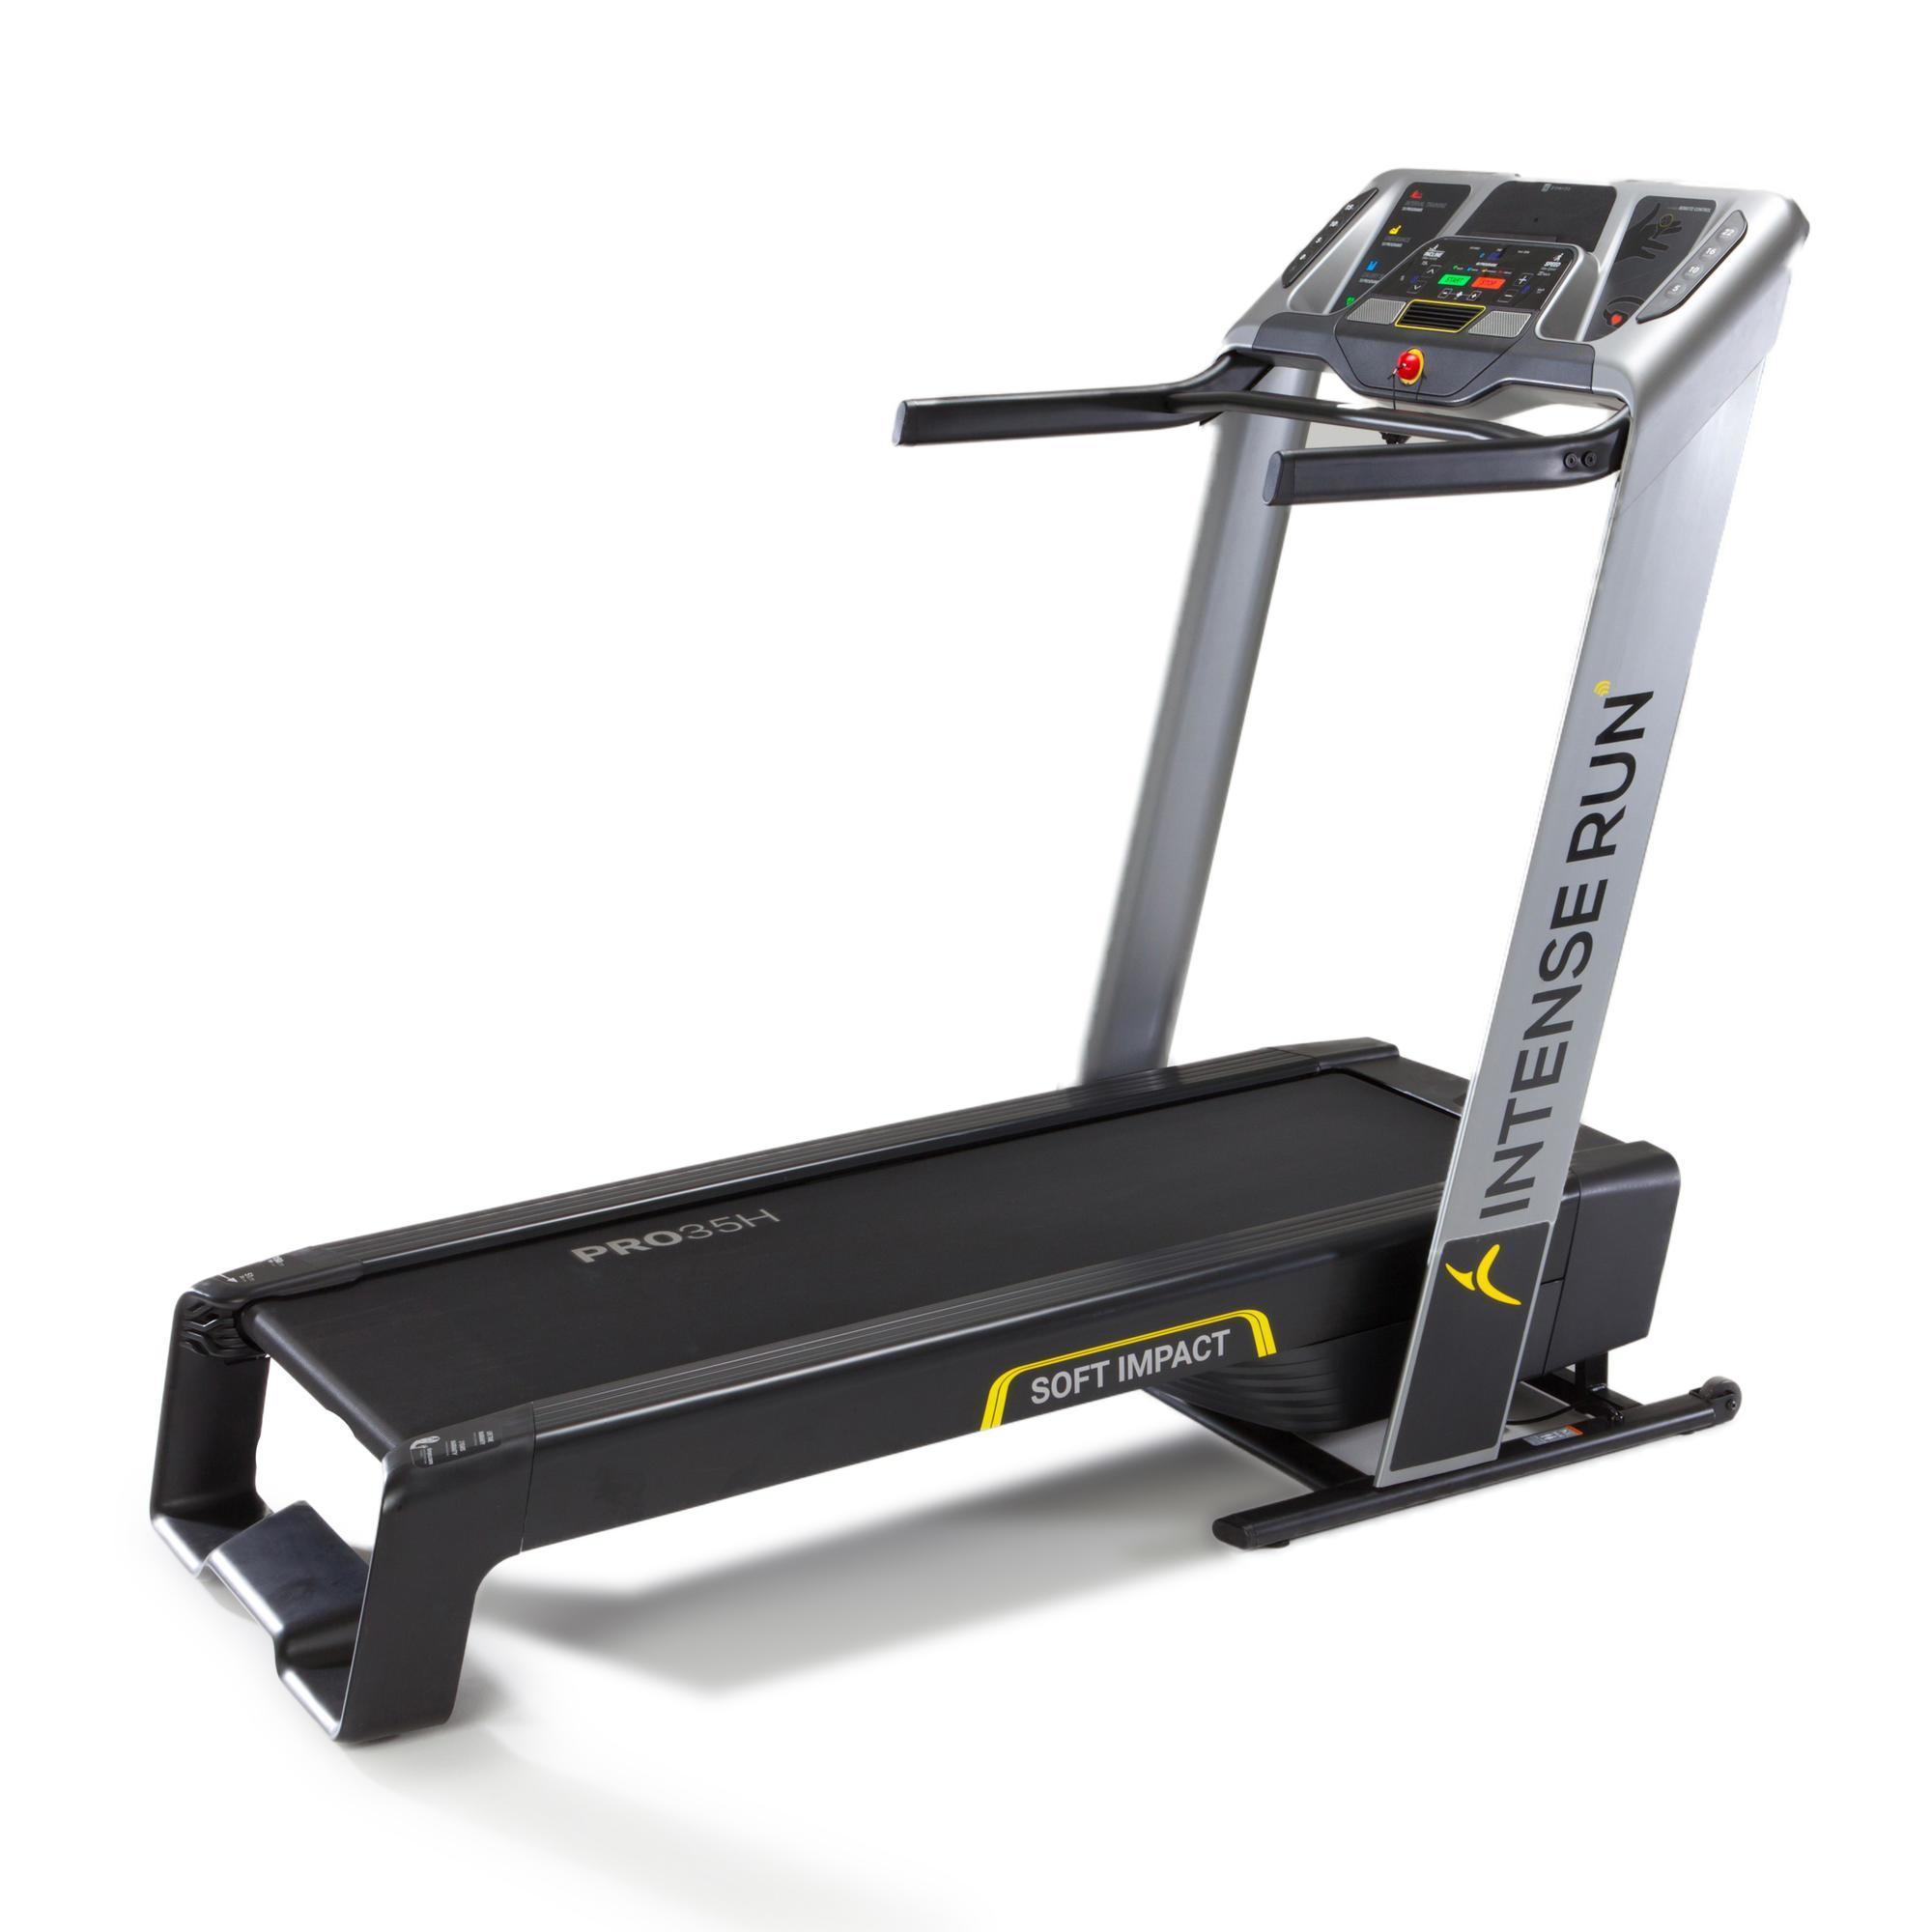 intense run treadmill domyos by decathlon